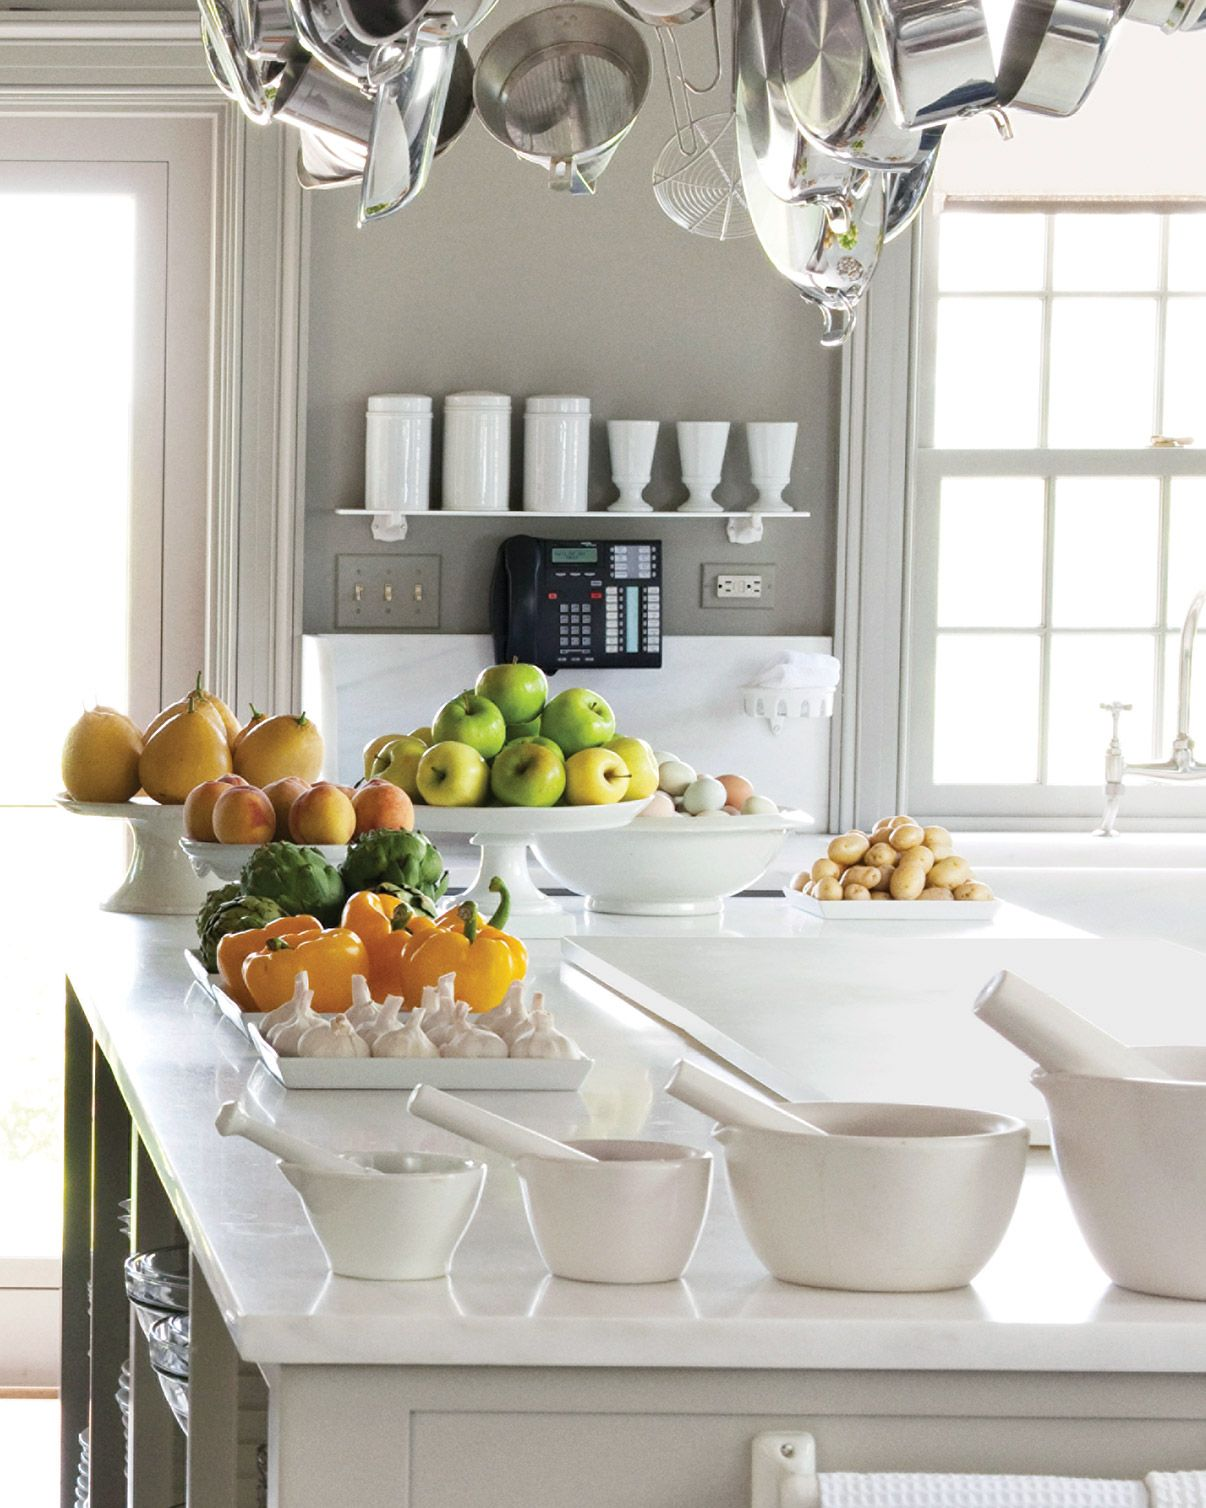 Martha S Top Kitchen Organizing Tips In 2020 Kitchen Tops Kitchen Design Kitchen Hacks Organization